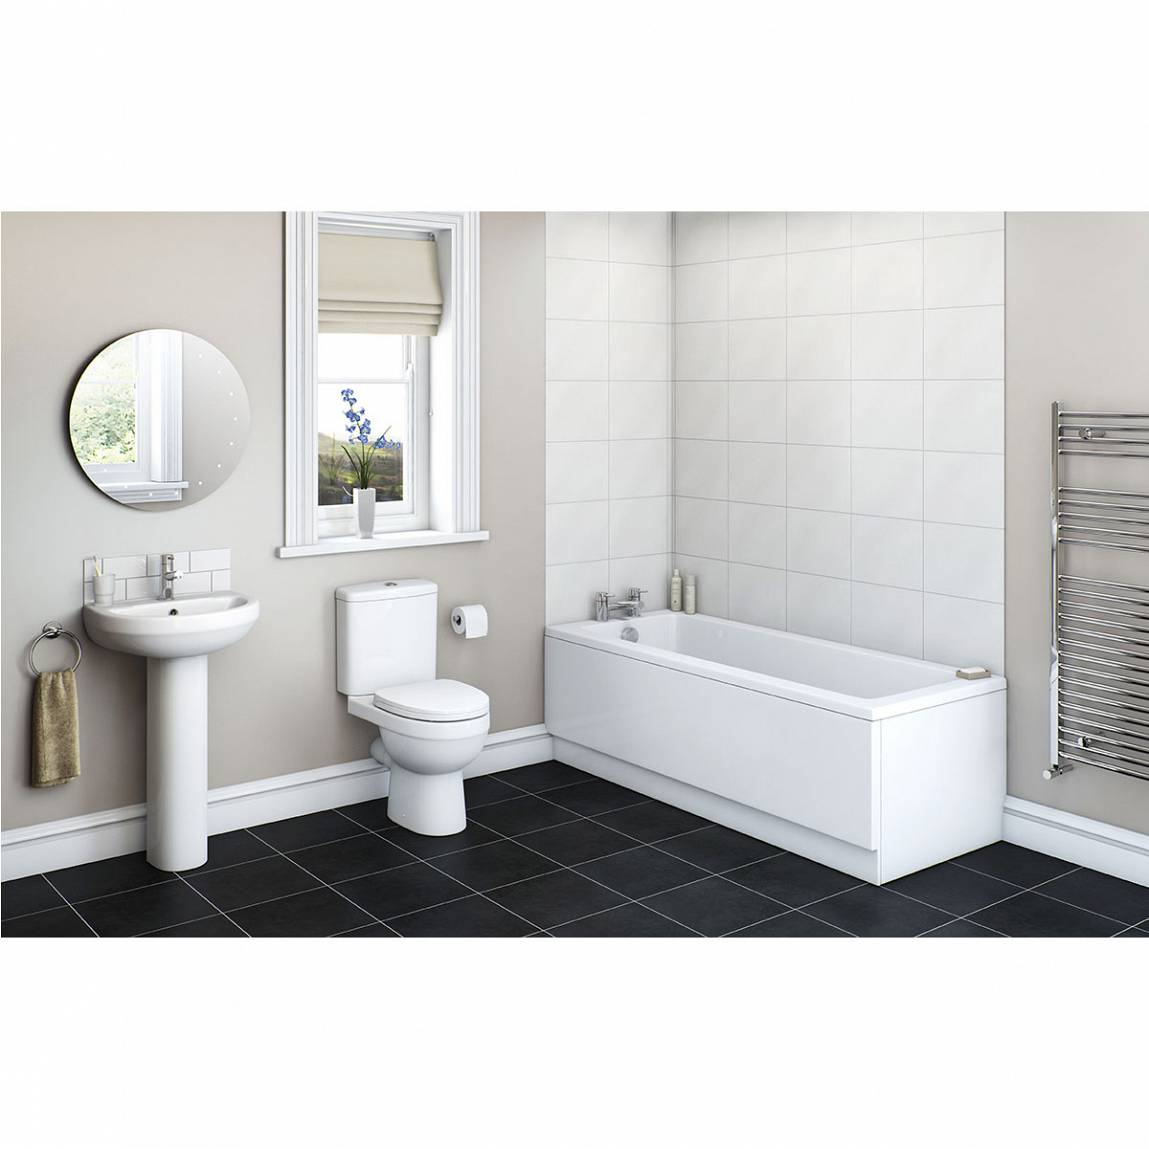 Image of Energy Bathroom Set with Kensington 1700 x 750 Bath Suite